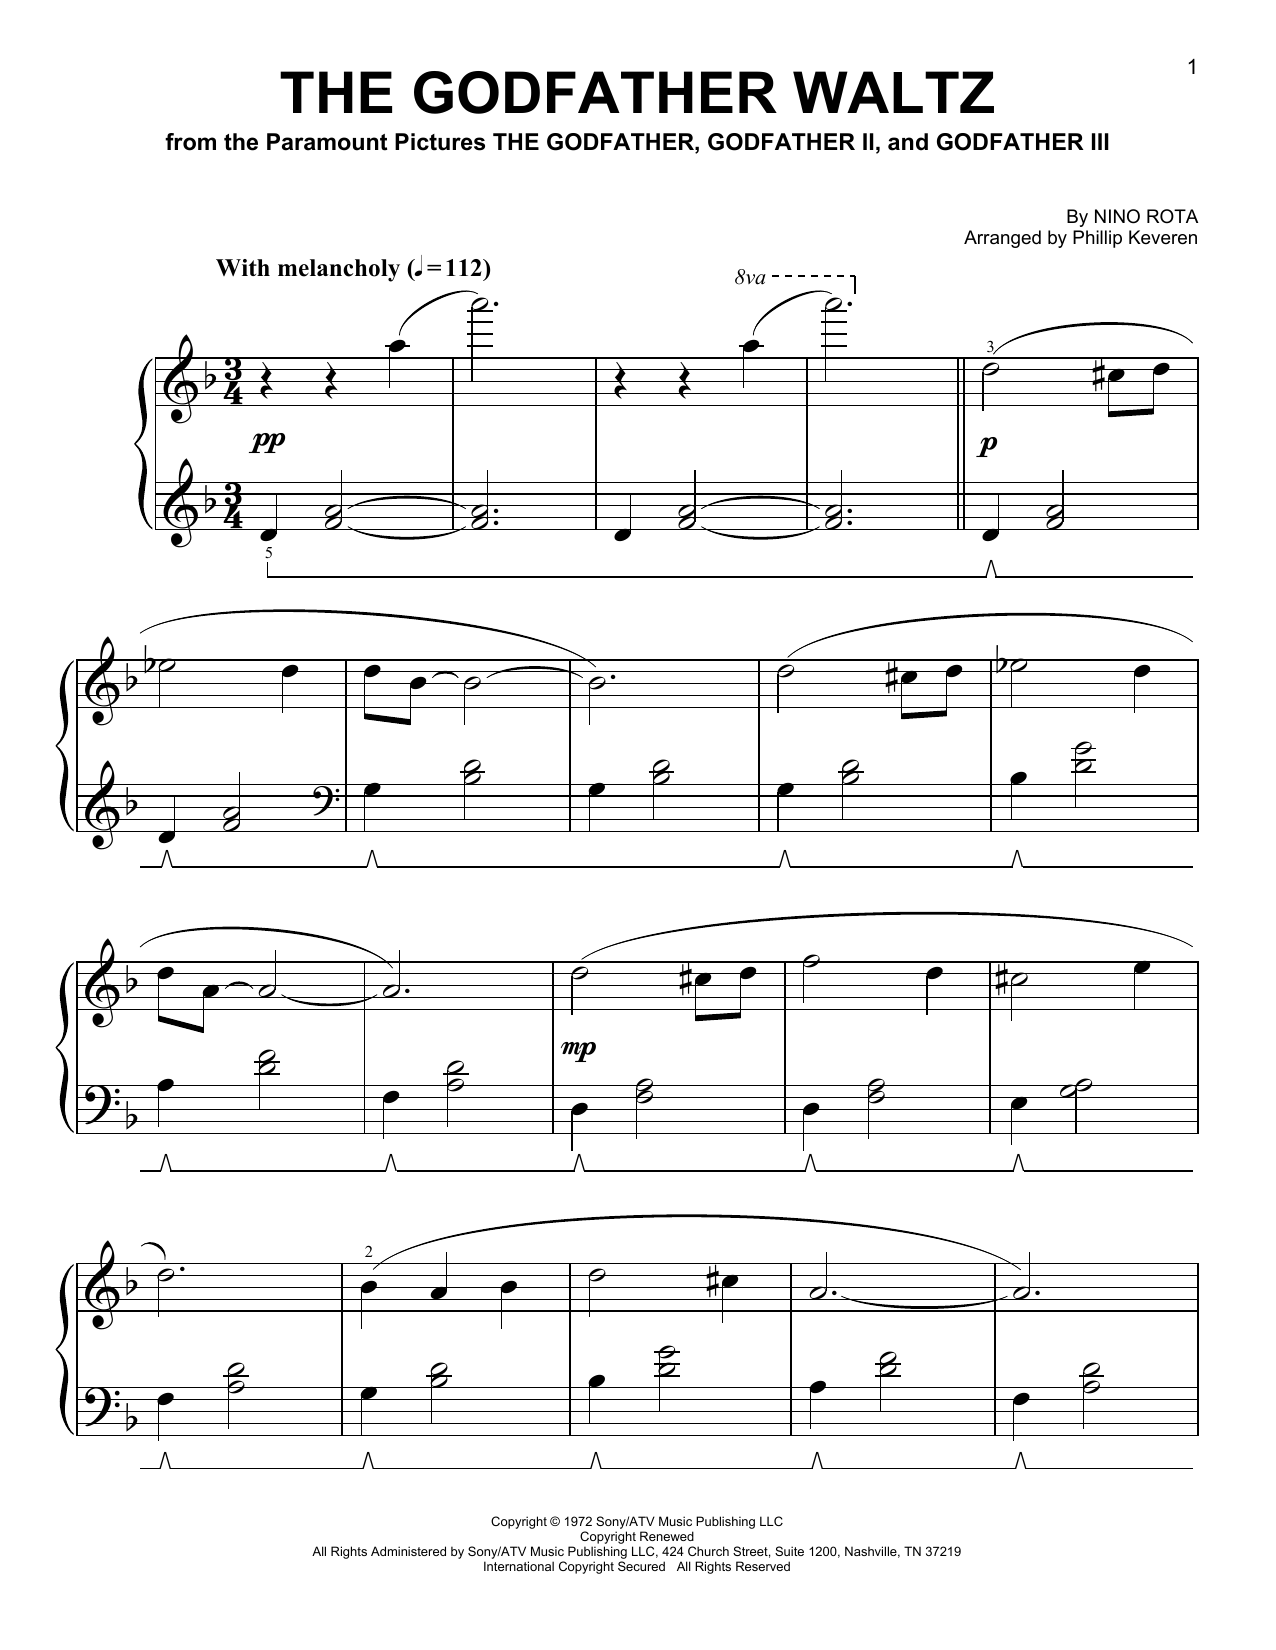 Nino Rota The Godfather Waltz [Classical version] (arr. Phillip Keveren) sheet music notes and chords. Download Printable PDF.